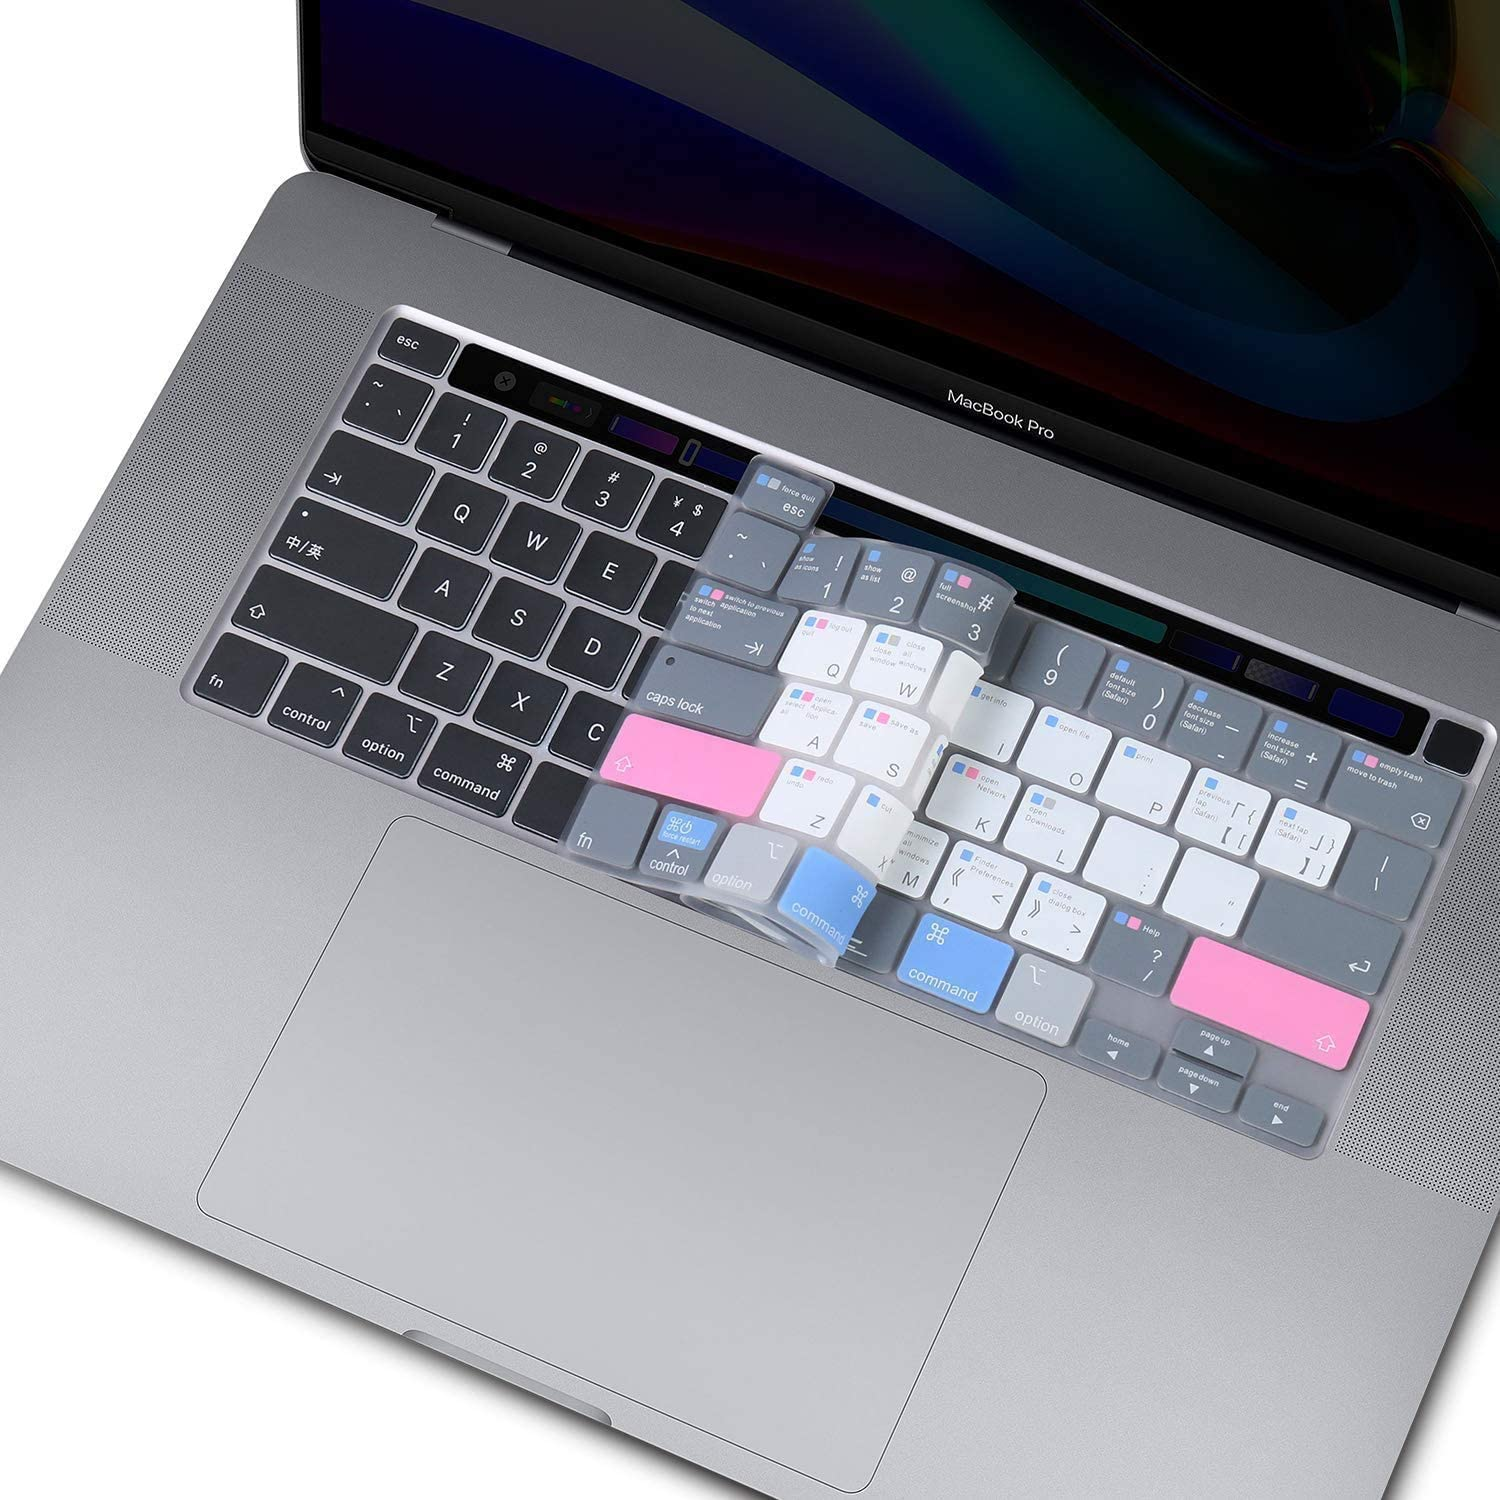 Silicone Mac Many popular brands OS Shortcut Keyboard Cover Pro with for 13 MacBook Super intense SALE